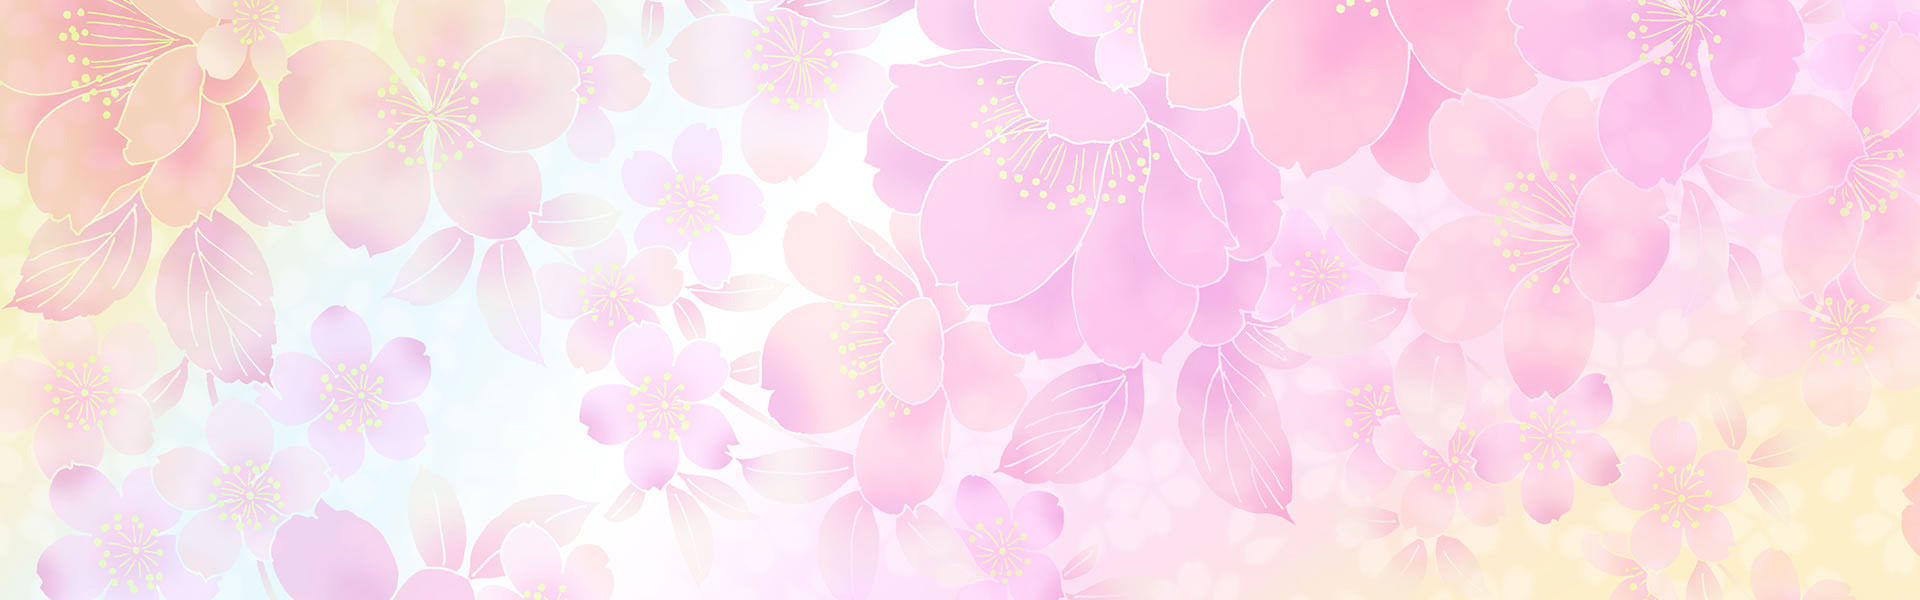 papel de parede padr u00e3o design lil u00e1s background decora u00e7 u00e3o